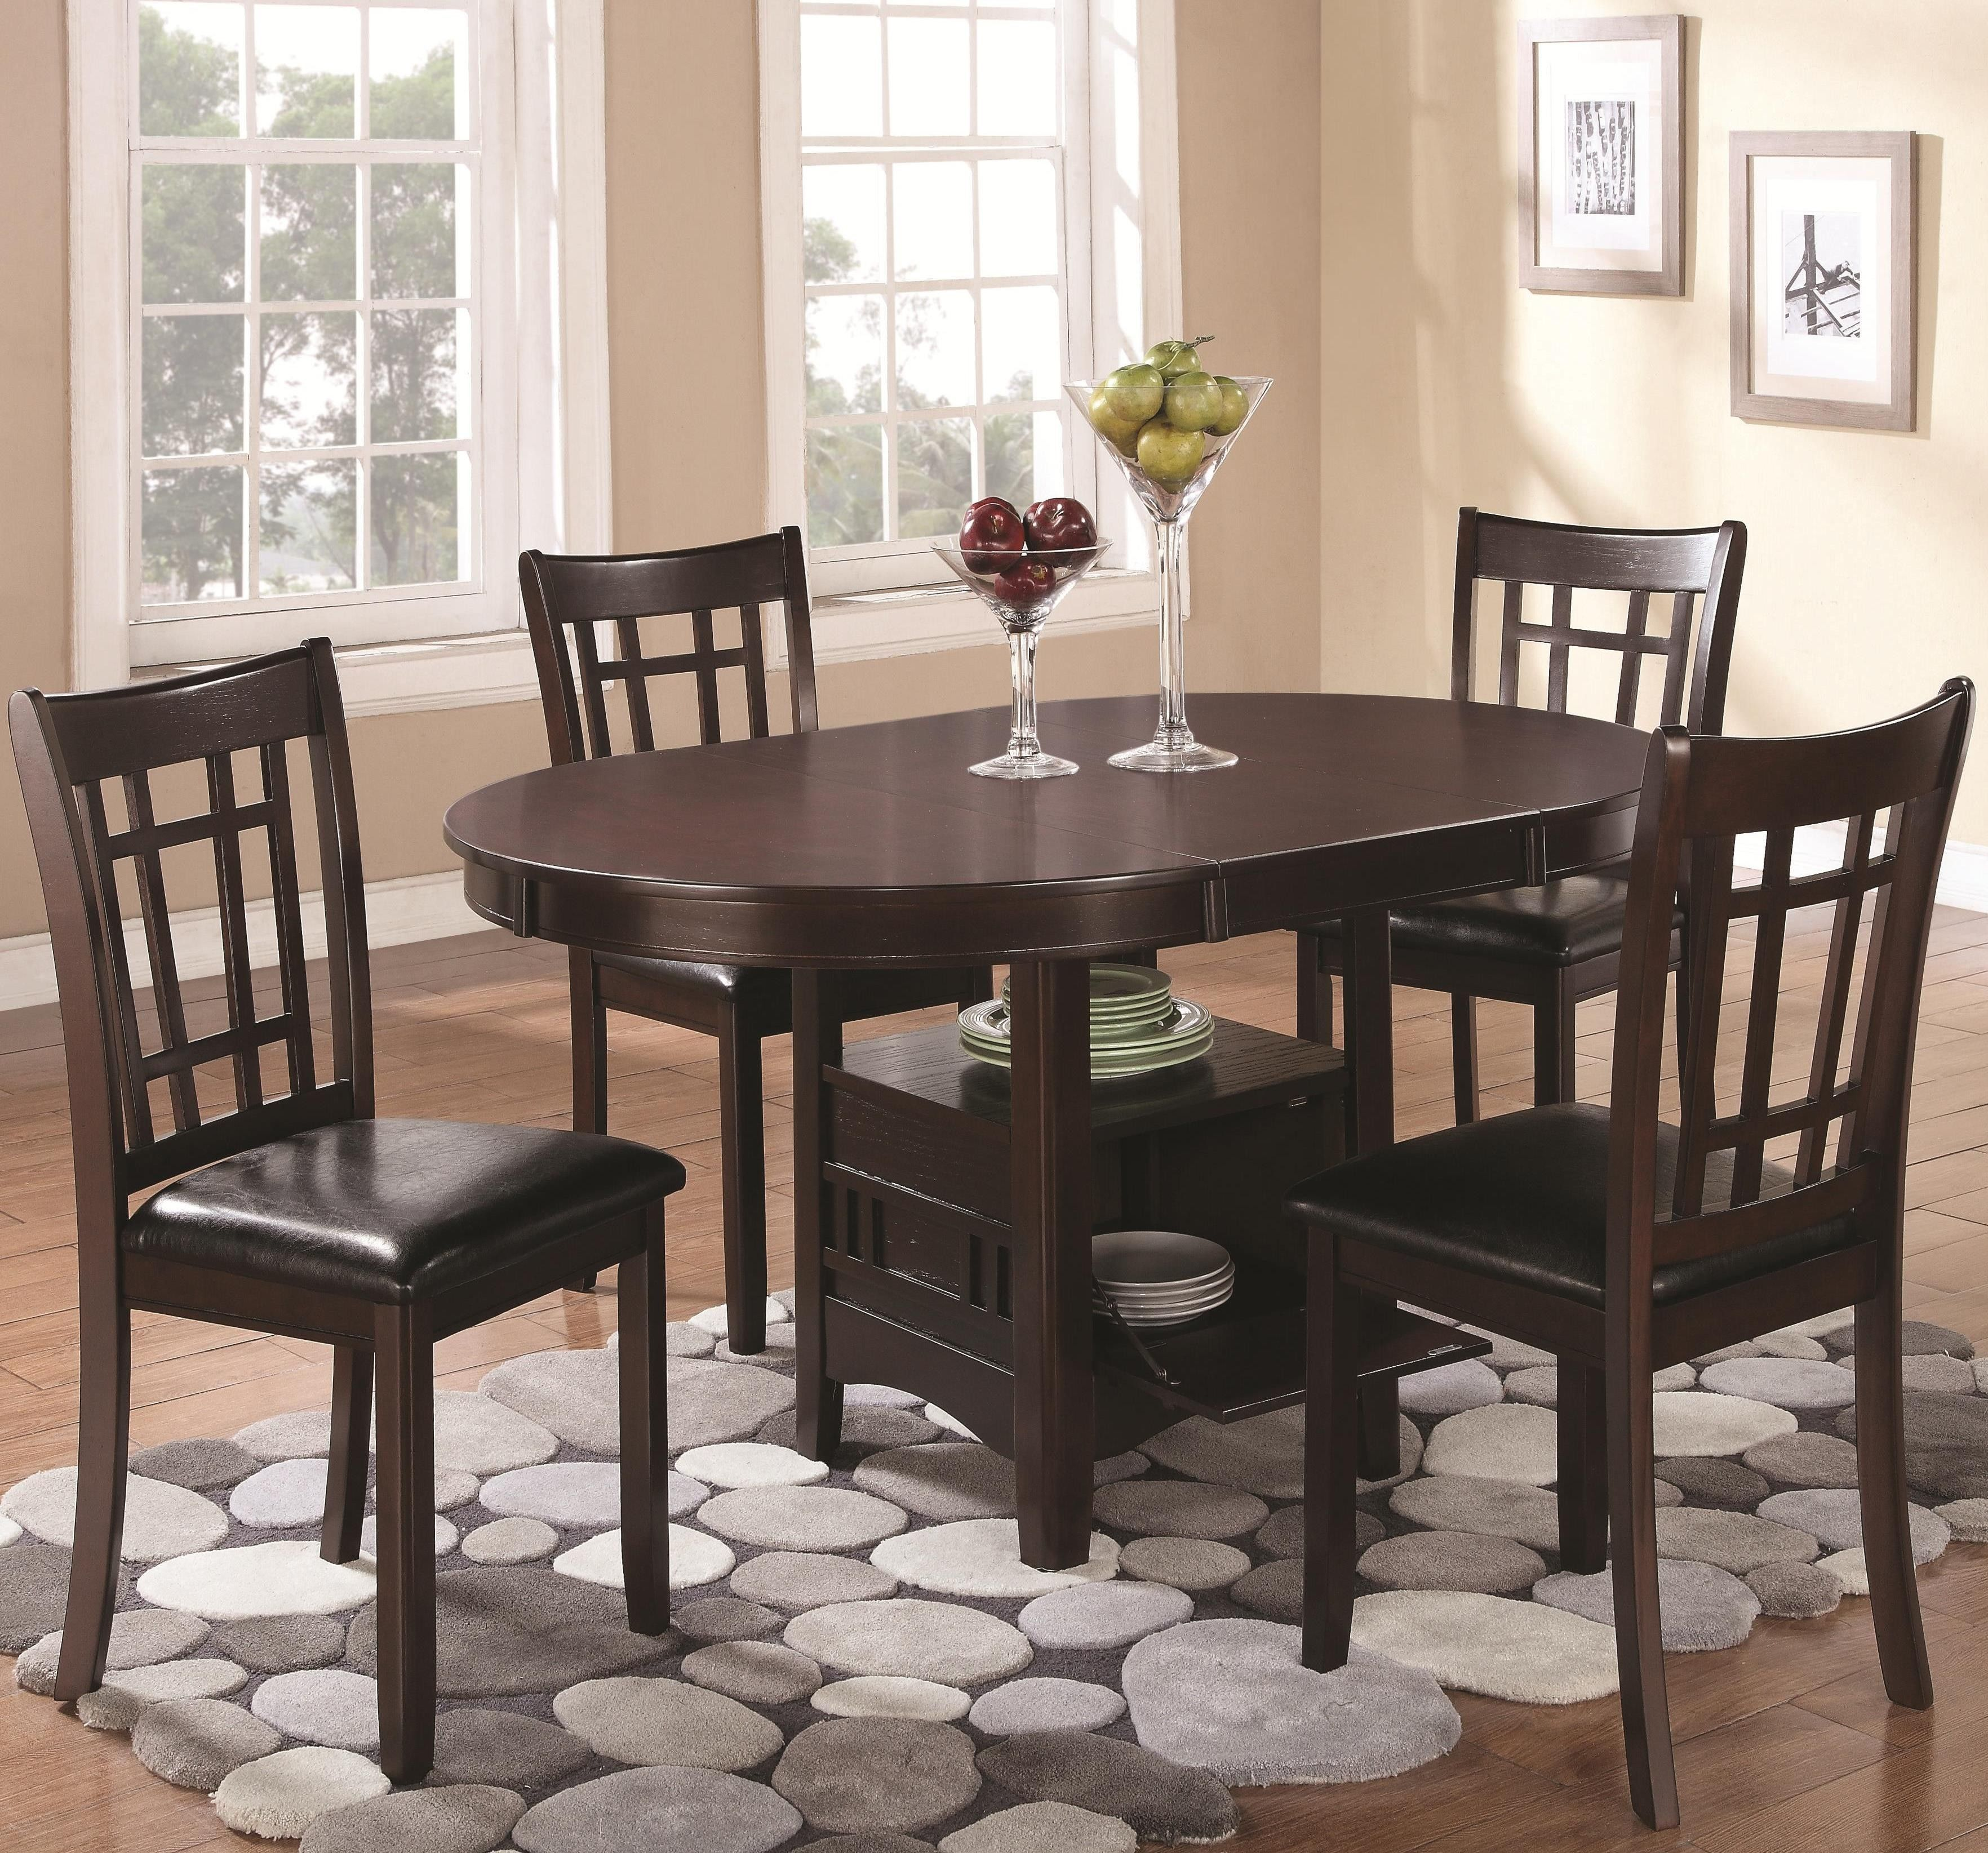 The table in this set features an elegant oval top with an 18     The table in this set features an elegant oval top with an 18 extension  leaf and a storage base where you can display decorative pieces